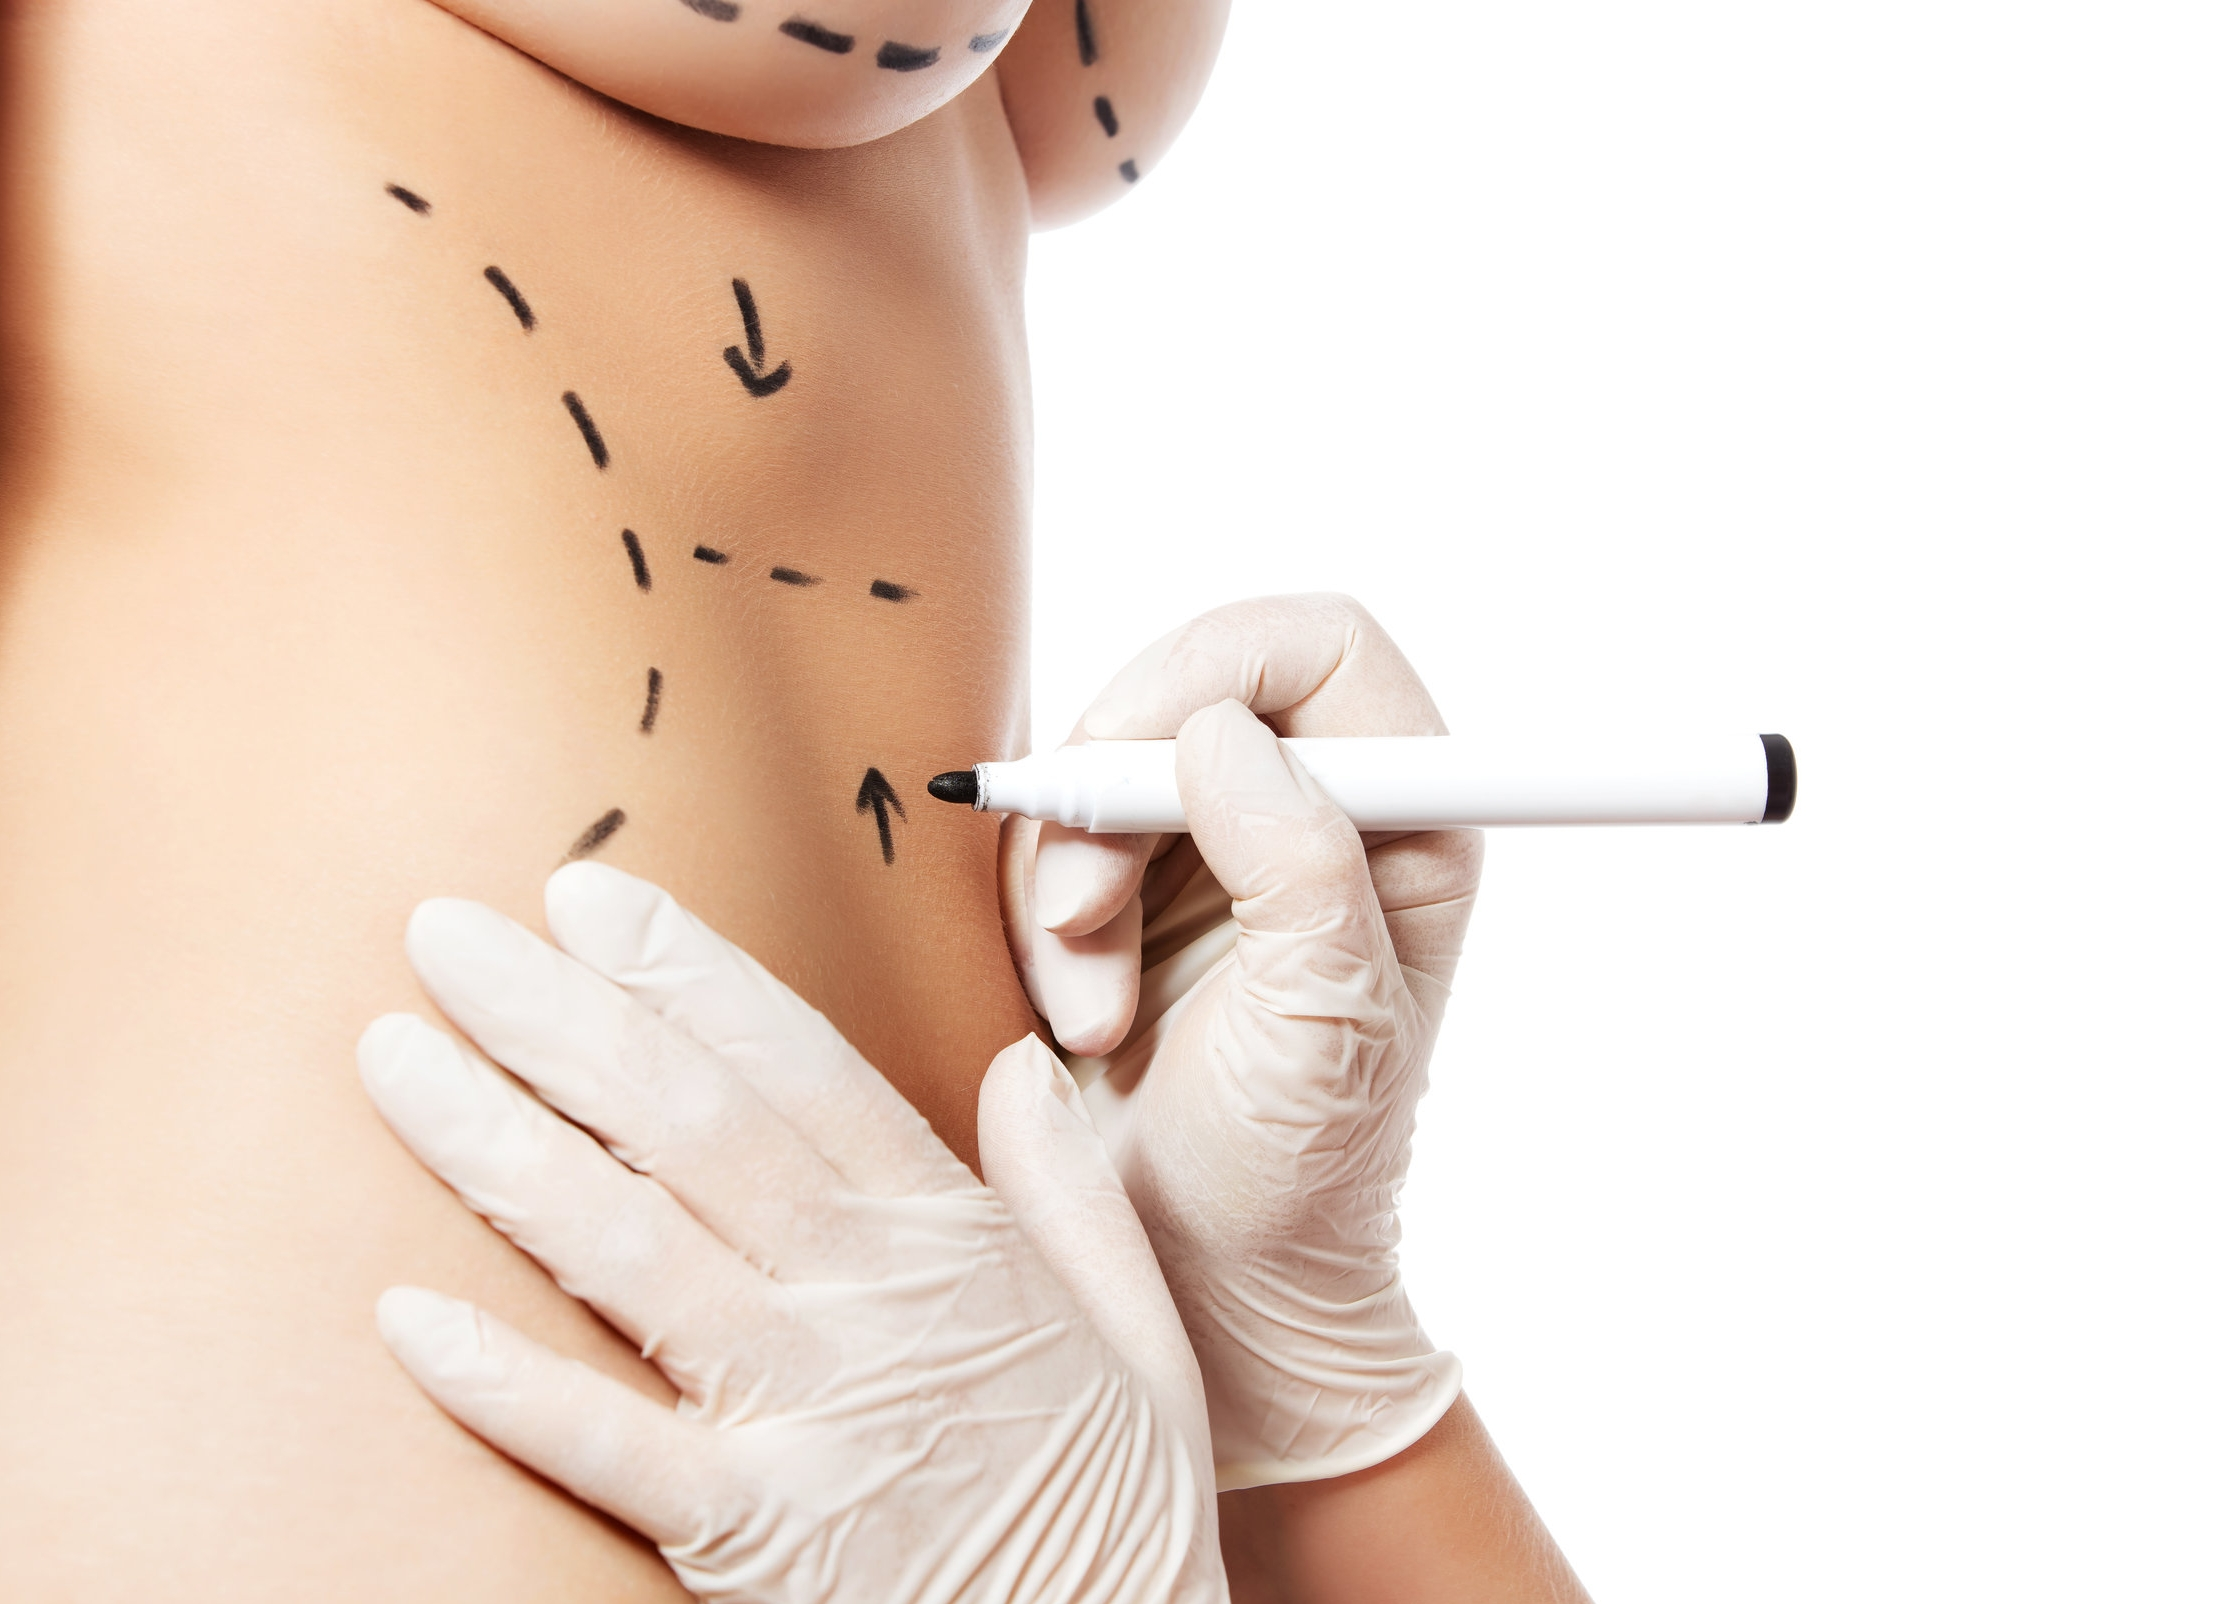 SIA - Cosmetic Reinforcement (SCoRe)  Evaluating the efficacy of DuraSorb Monofilament Mesh when used in reinforcement for abdominoplasty or brachioplasty.